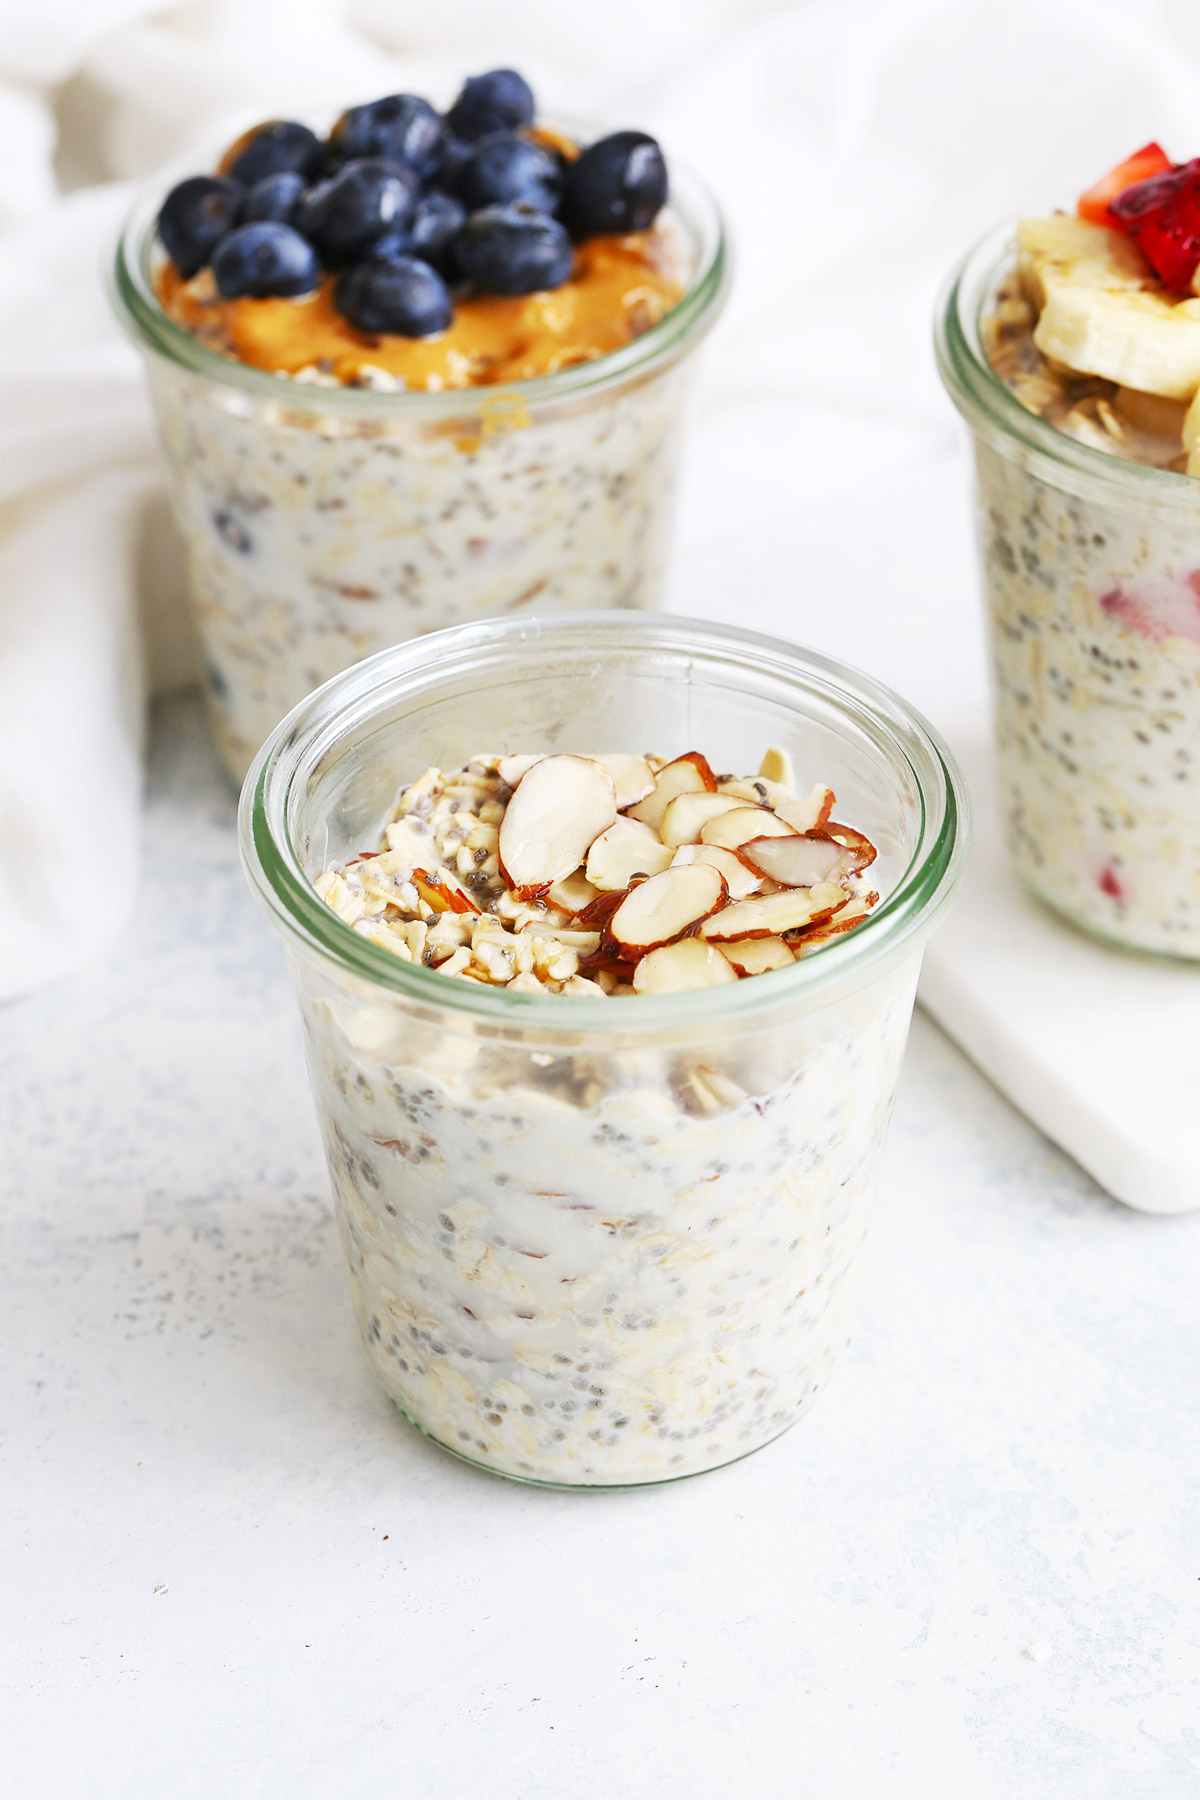 Honey Almond Overnight Oats from One Lovely Life